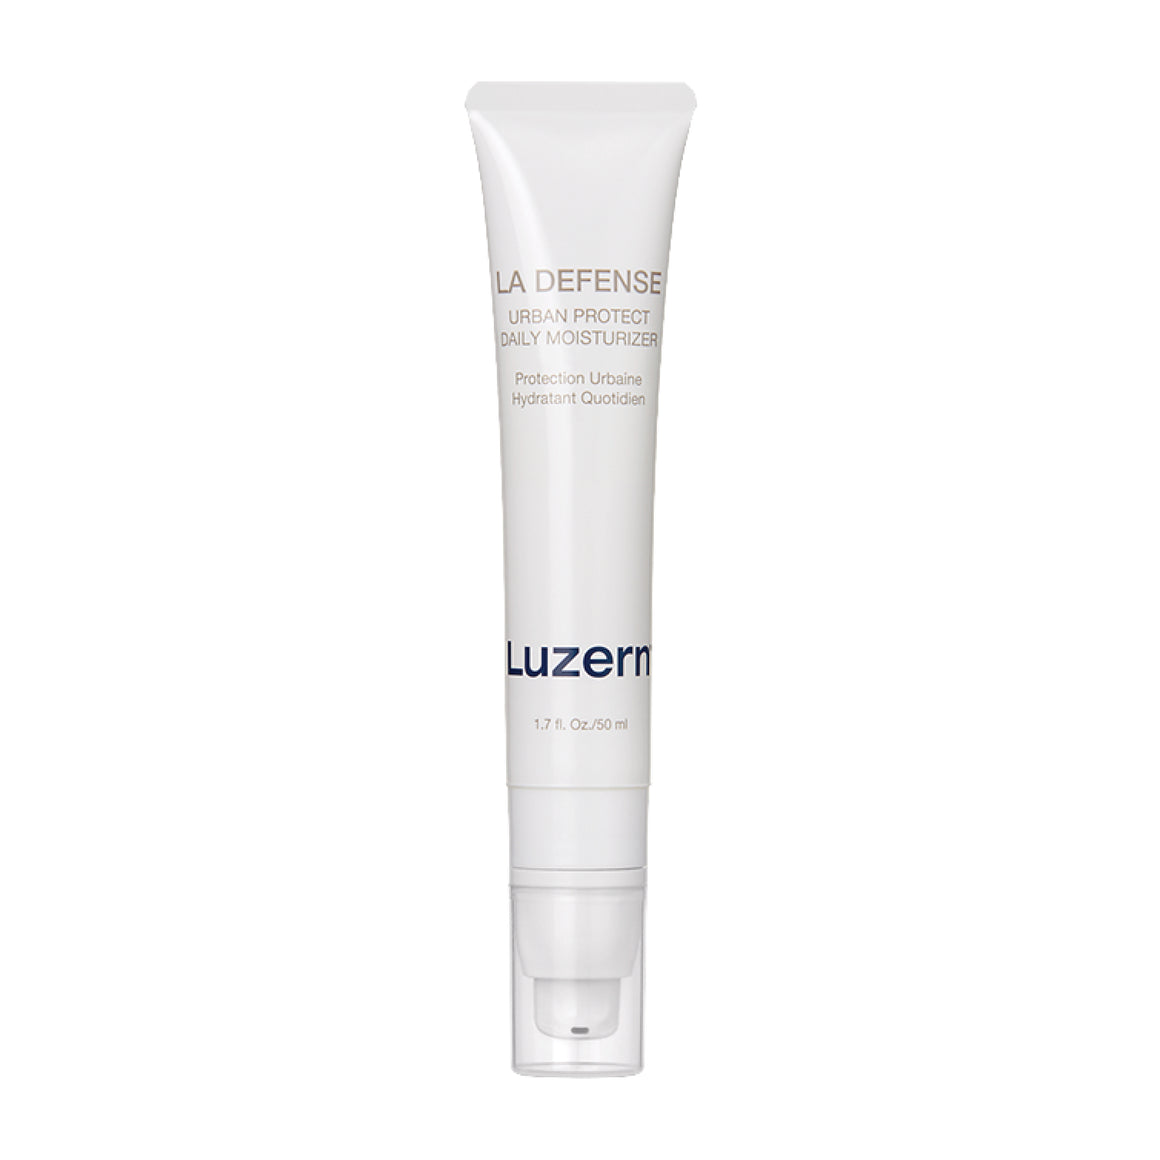 Luzern La Defense Daily Moisturizer